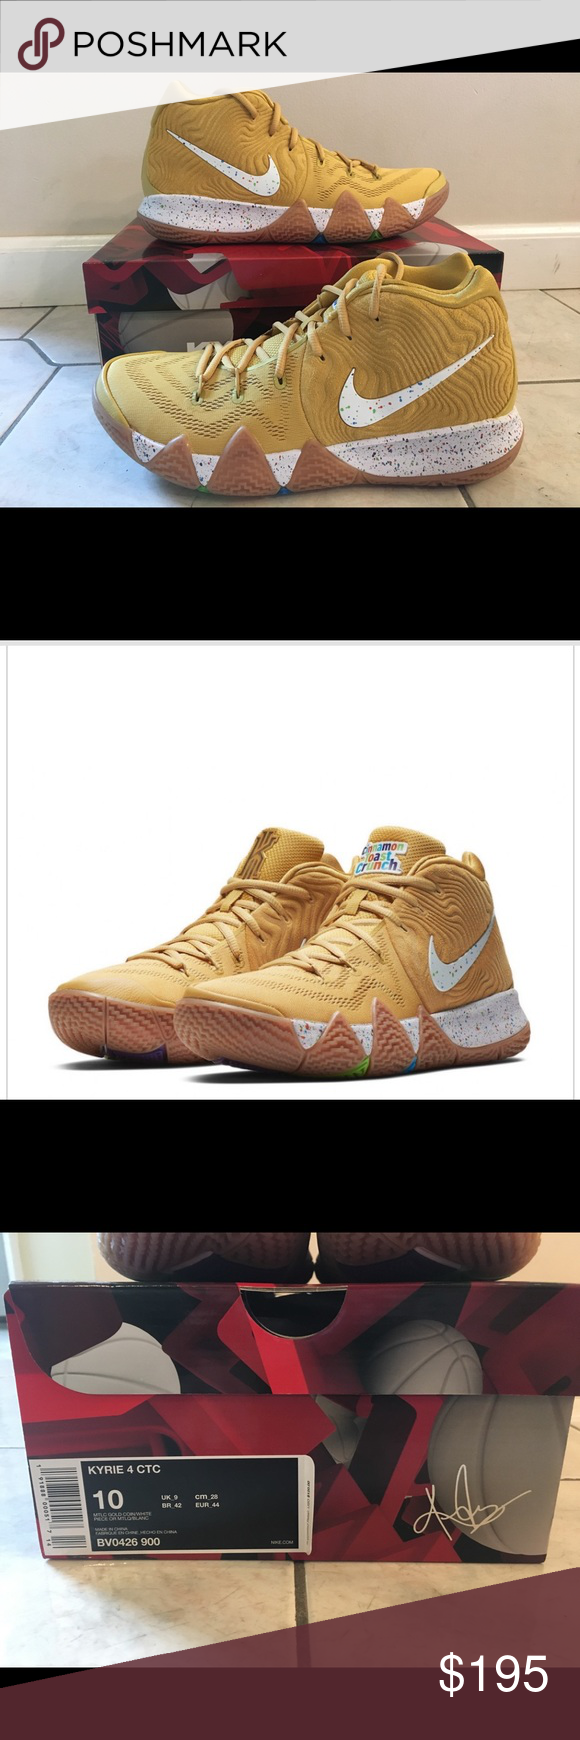 Nike Kyrie 4 Cinnamon Toast Crunch Nike Kyrie 4 Cinnamon Toast Crunch Size: 10 Men's Never Been Worn Nike Shoes Sneakers #cinnamontoastcrunch Nike Kyrie 4 Cinnamon Toast Crunch Nike Kyrie 4 Cinnamon Toast Crunch Size: 10 Men's Never Been Worn Nike Shoes Sneakers #cinnamontoastcrunch